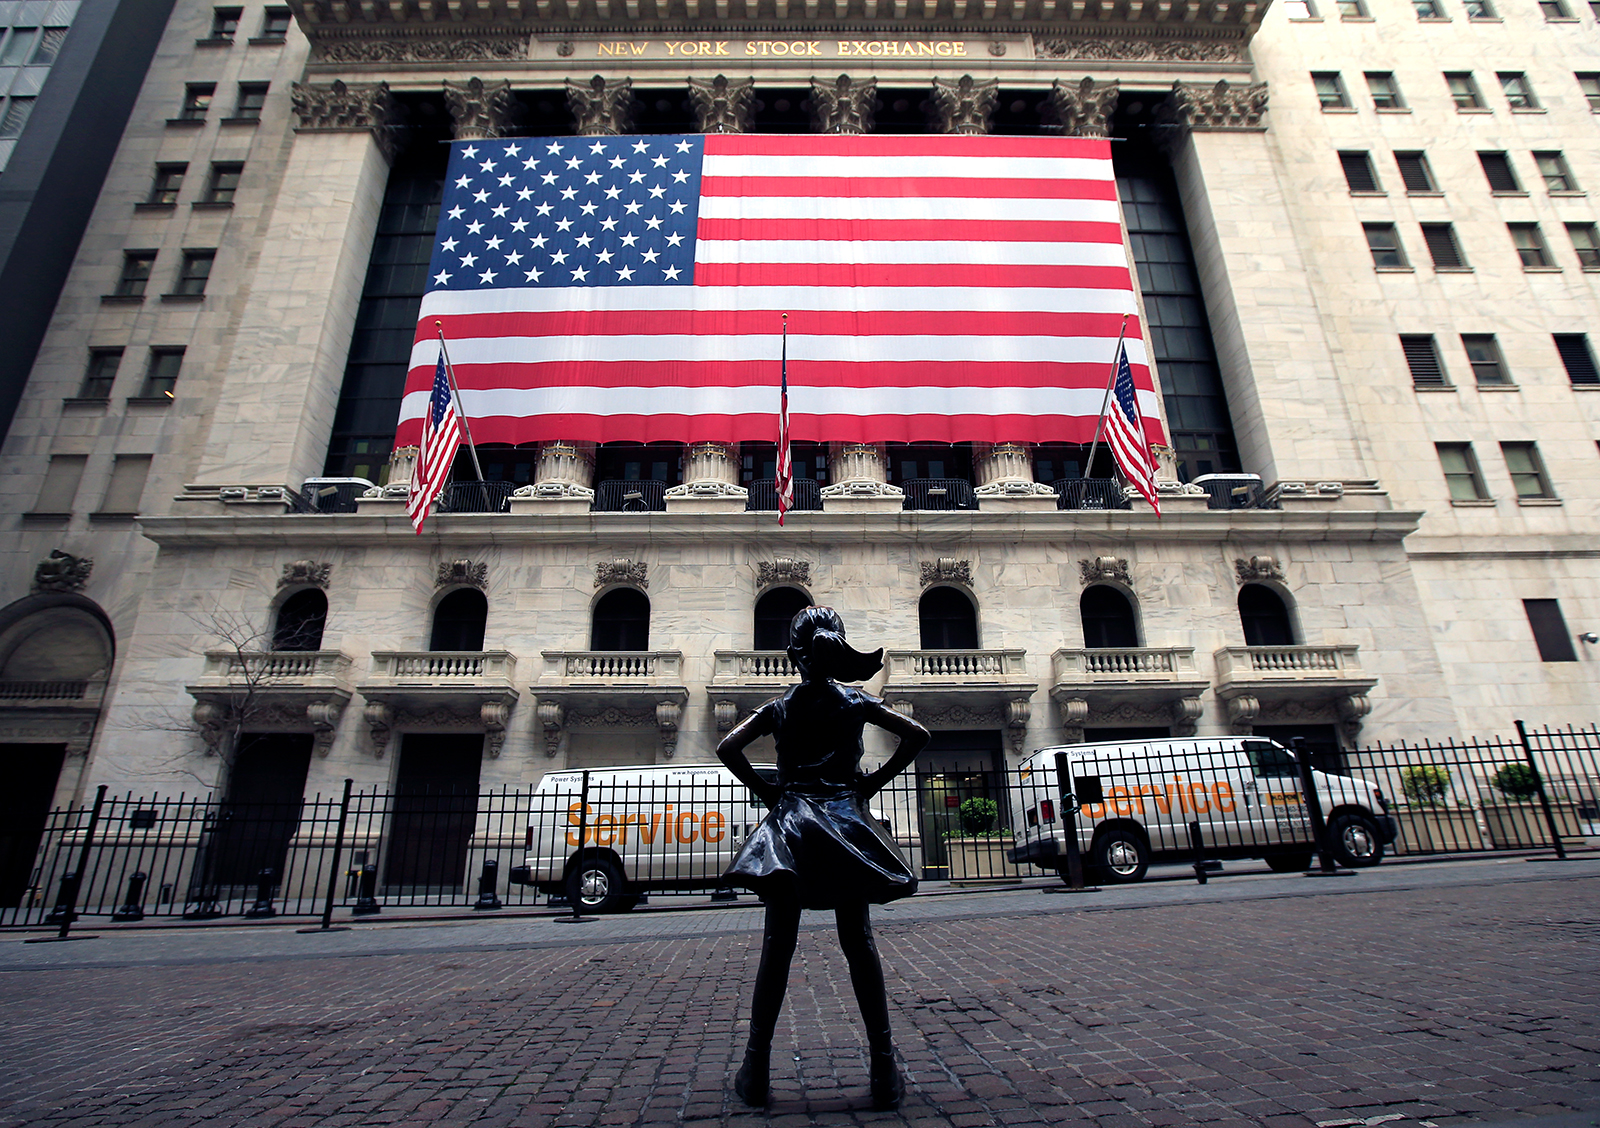 The Fearless Girl statue stands alone in front of the New York Stock Exchange near Wall Street on April 25, in New York City.